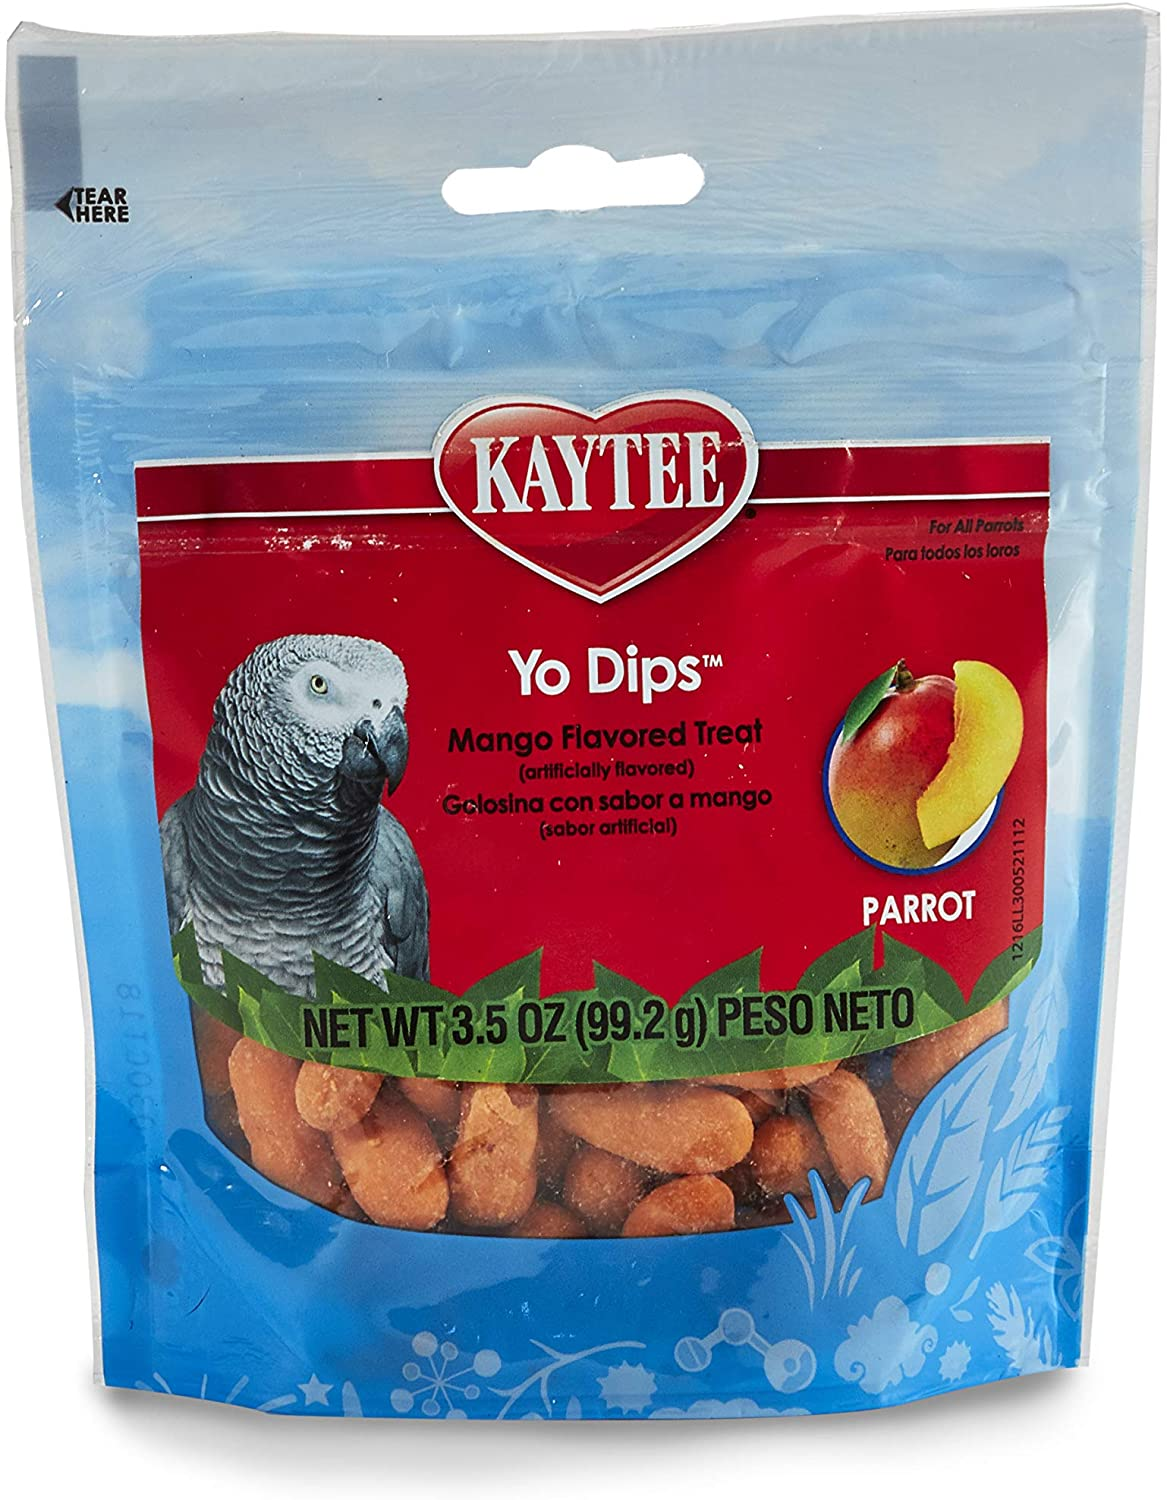 Kaytee Yogurt Dipped Mango Flavor Treat For Large Hookbills, 3.5 Oz.